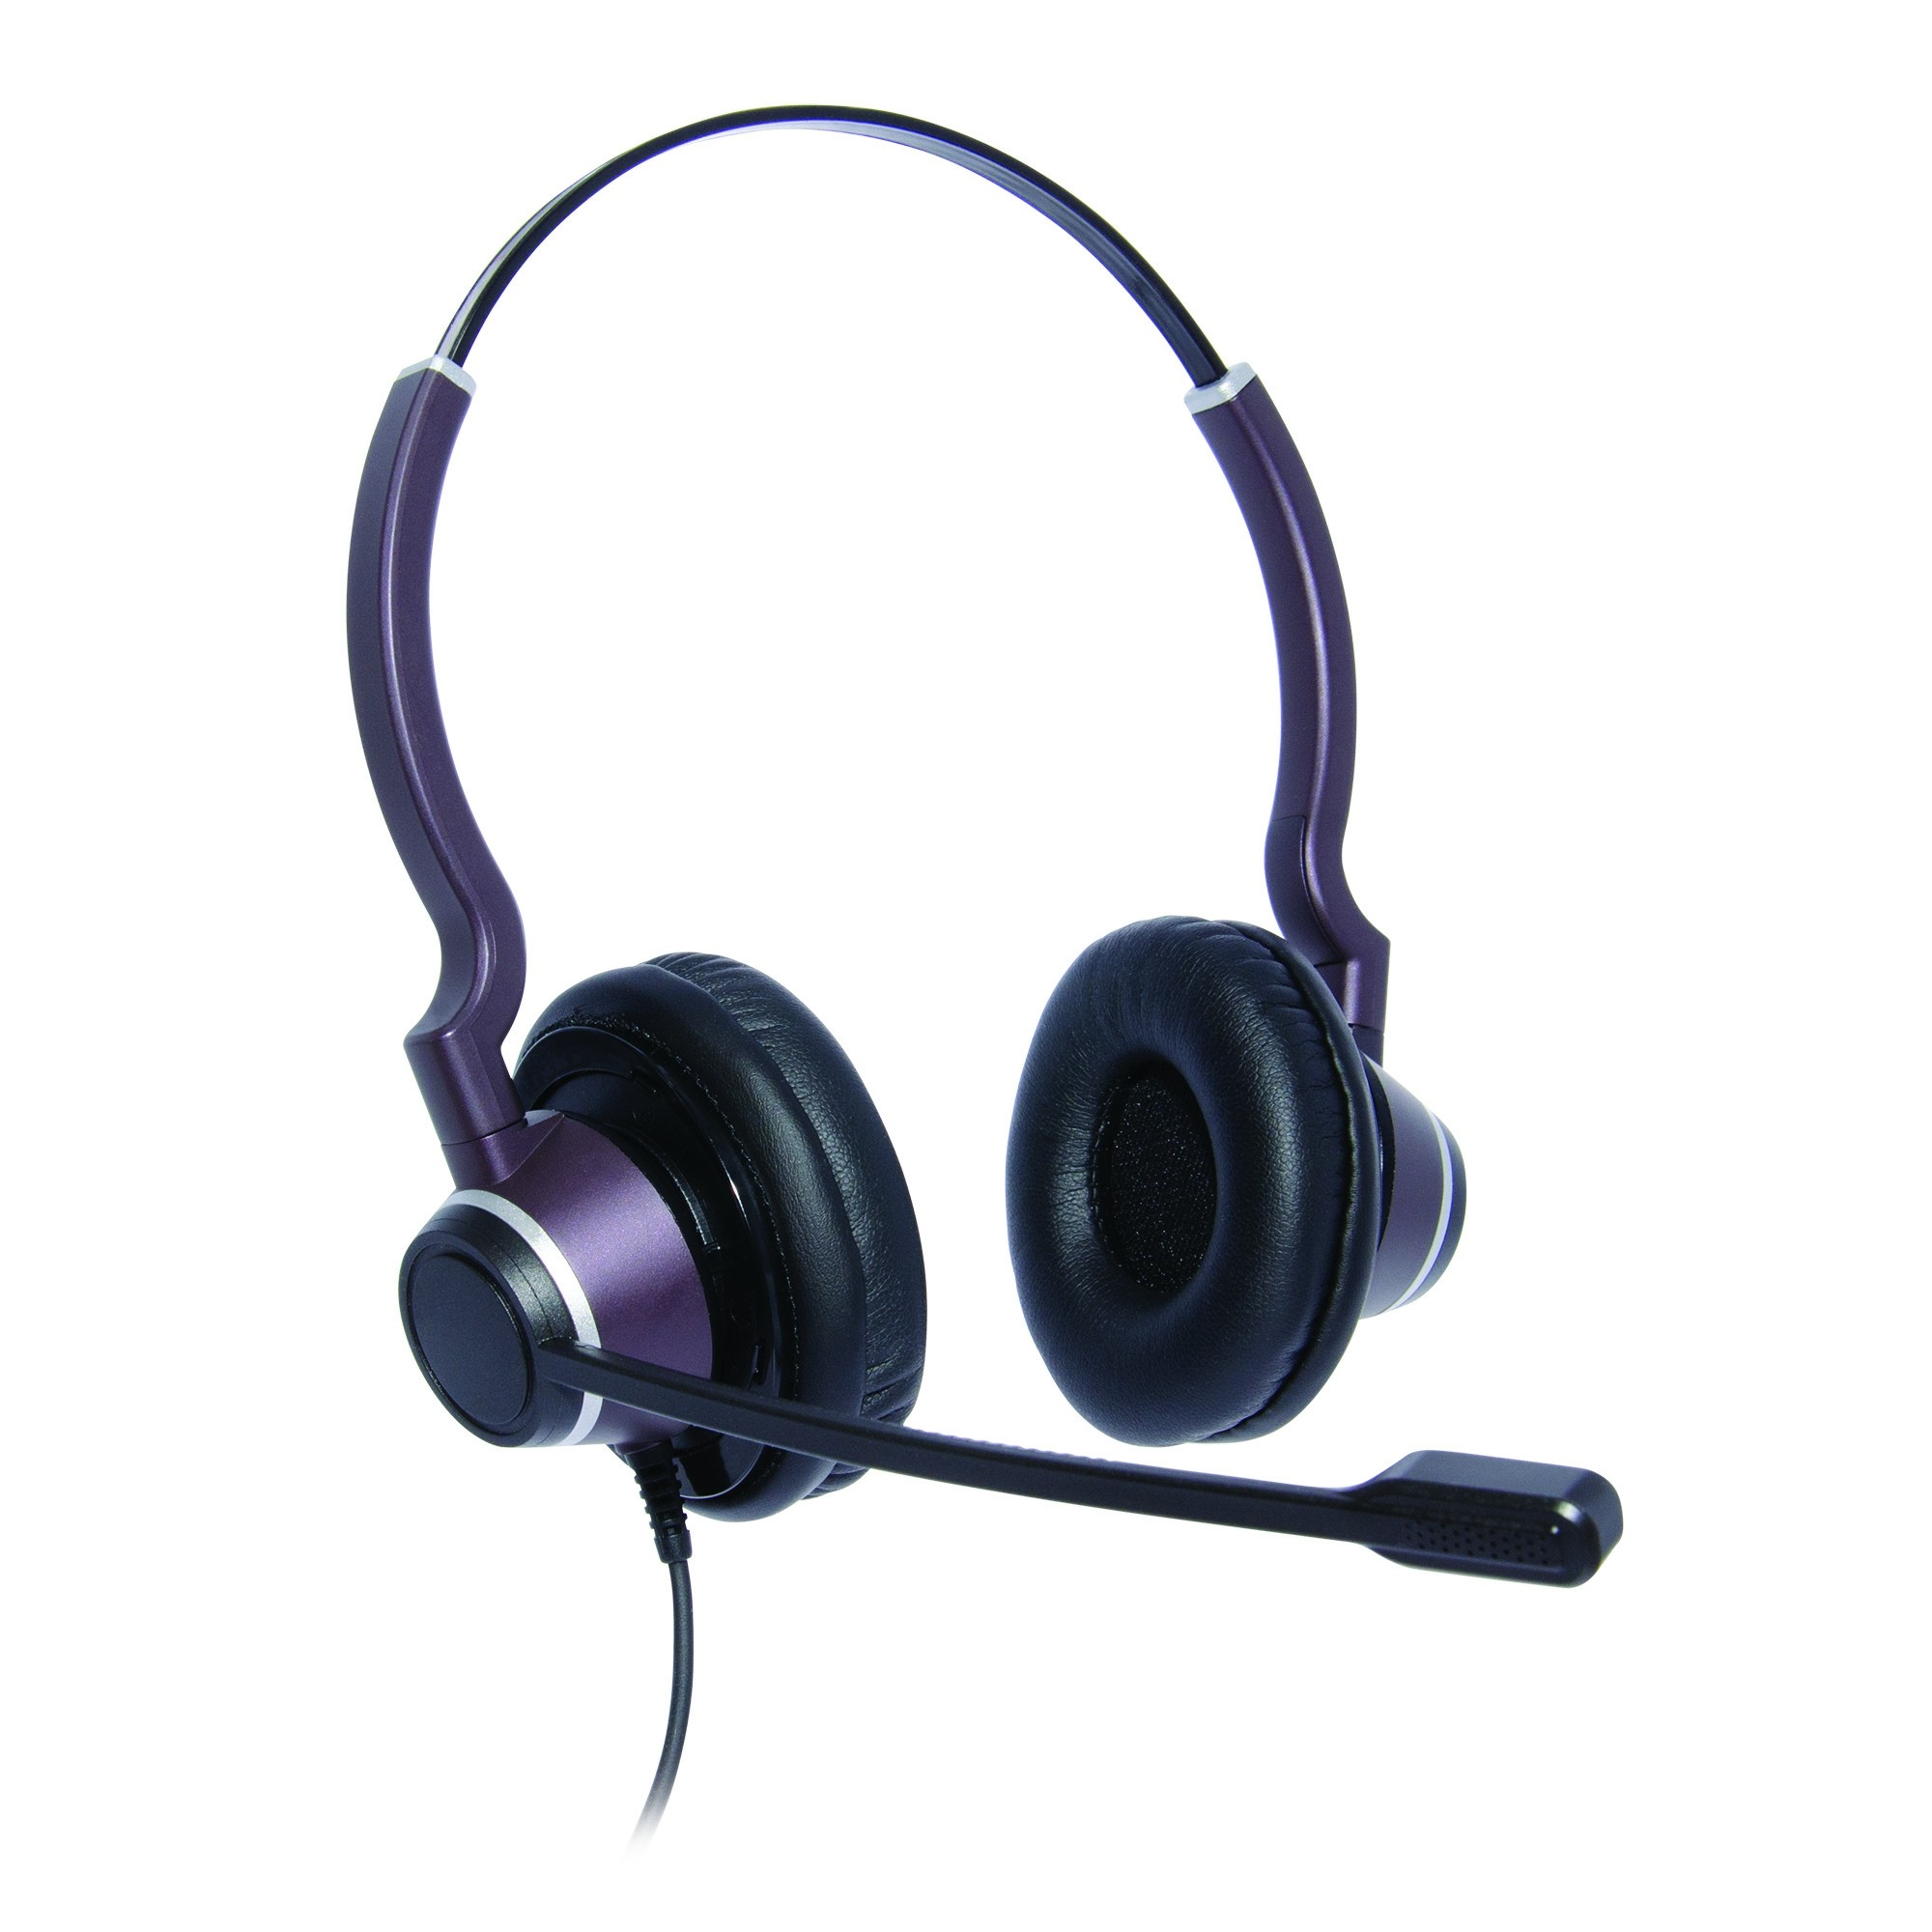 Avaya 9508 Binaural Ultra Noise Cancelling Contact Centre Headset